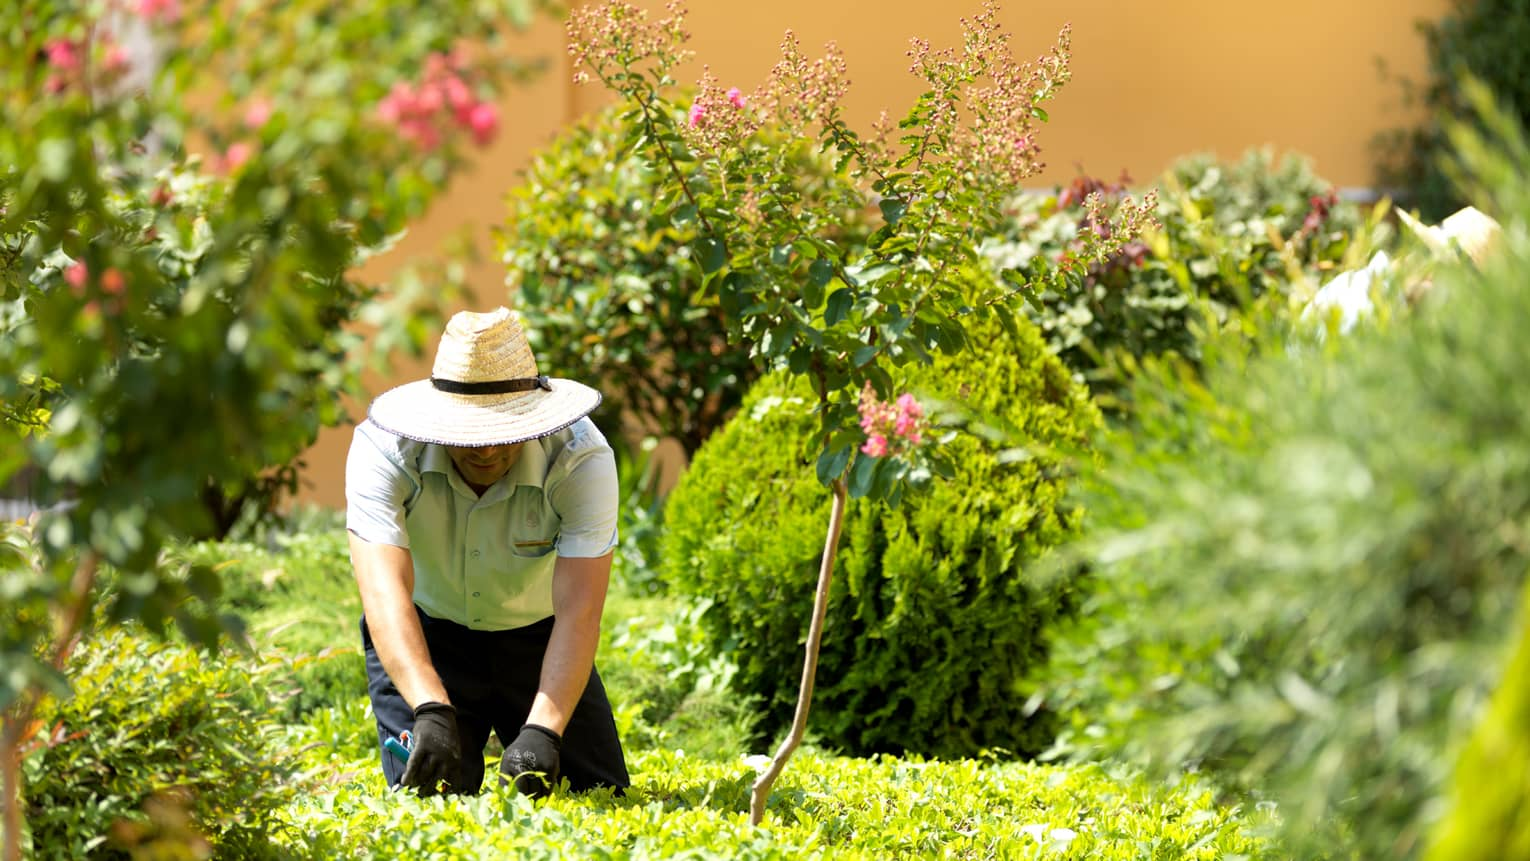 Gardener in straw hat kneels on grass in garden